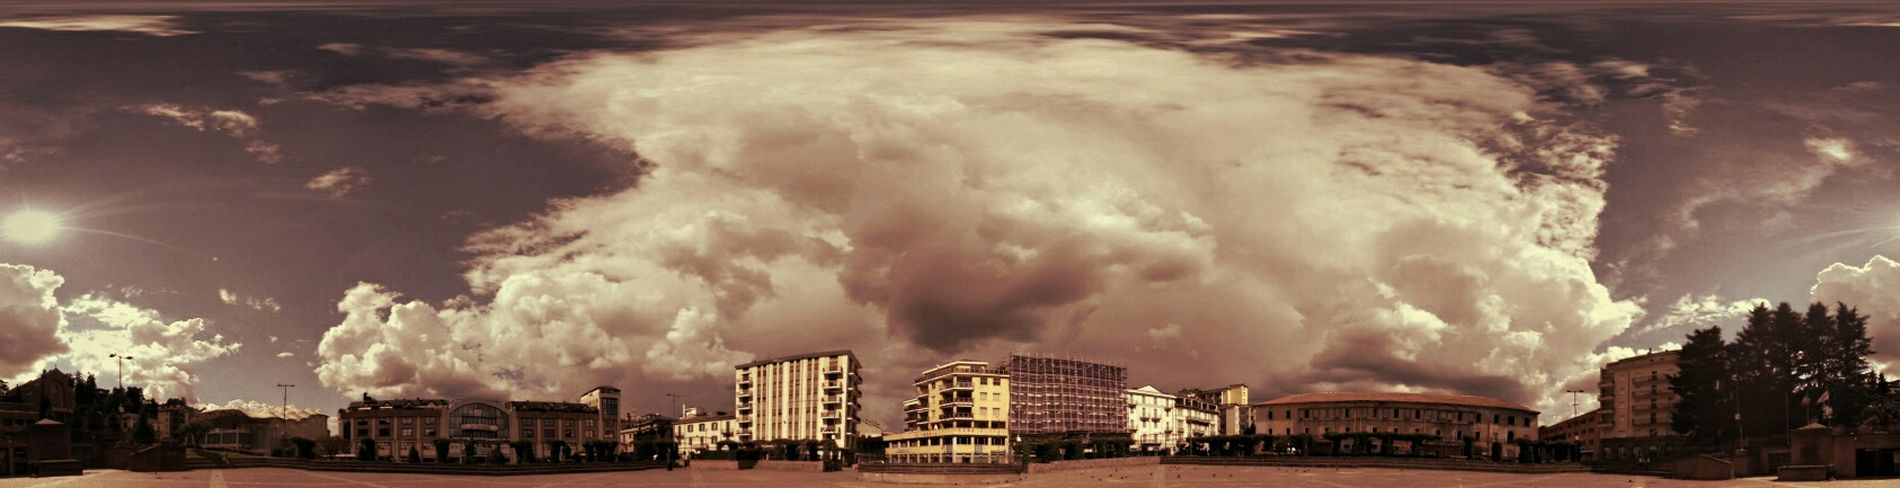 Photosphere Square Clouds And Sky